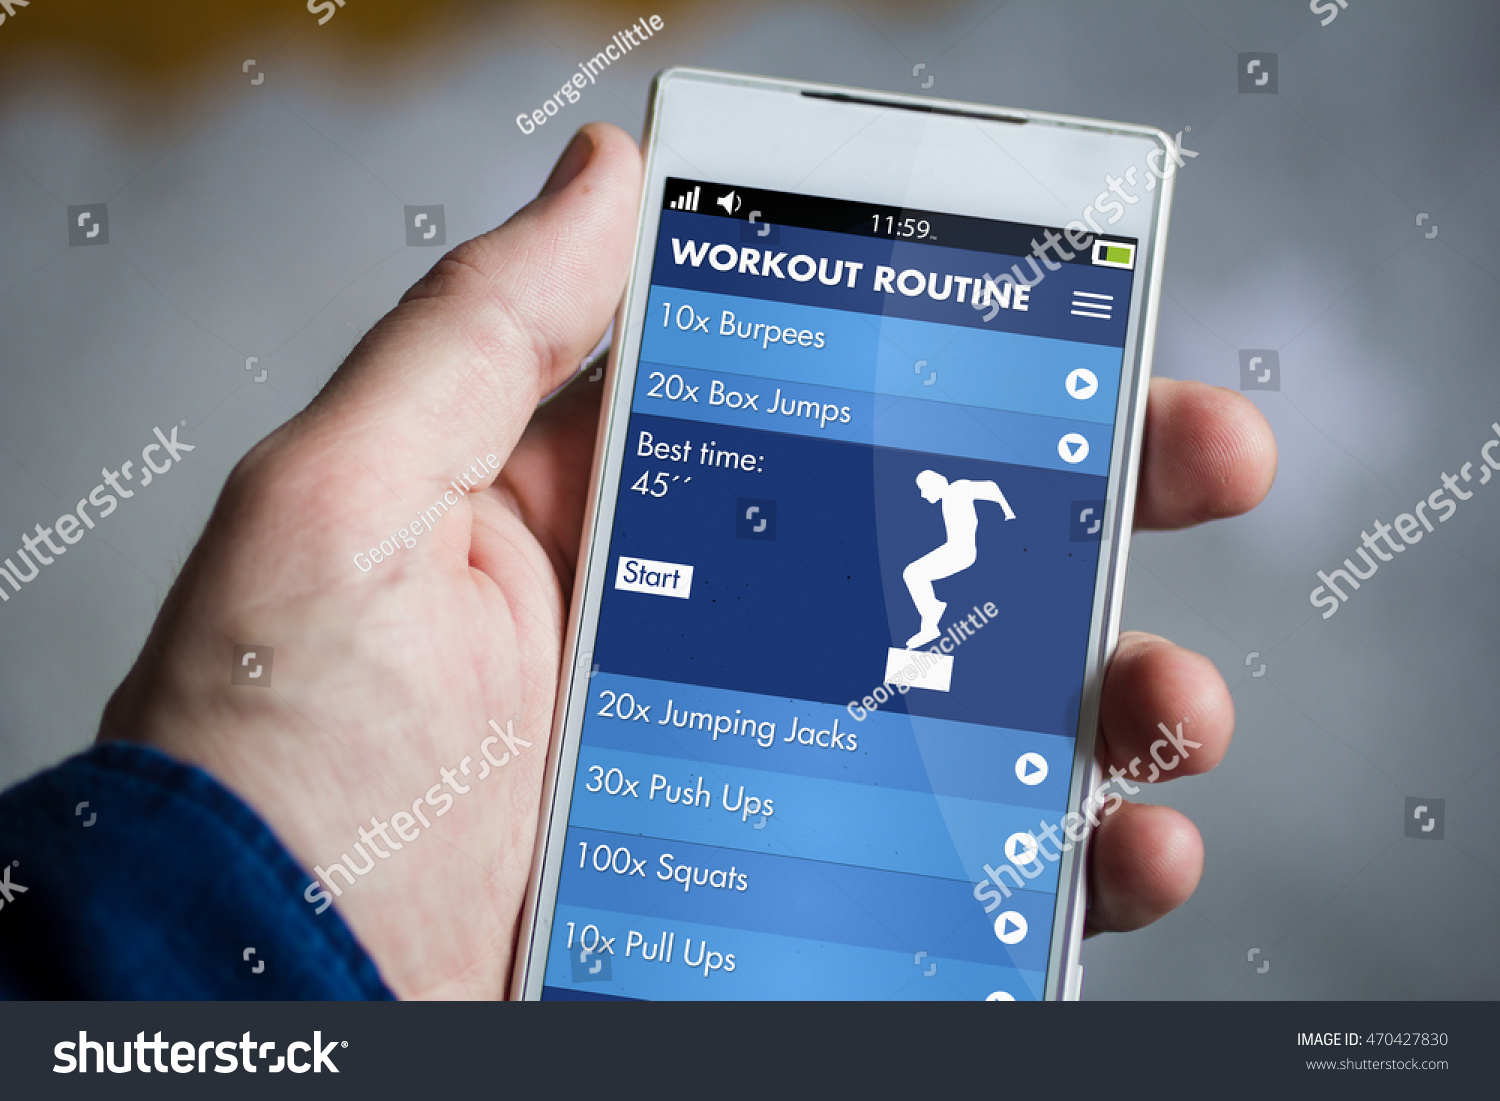 man hand holding fitness app smartphone. All screen graphics are made up. #470427830